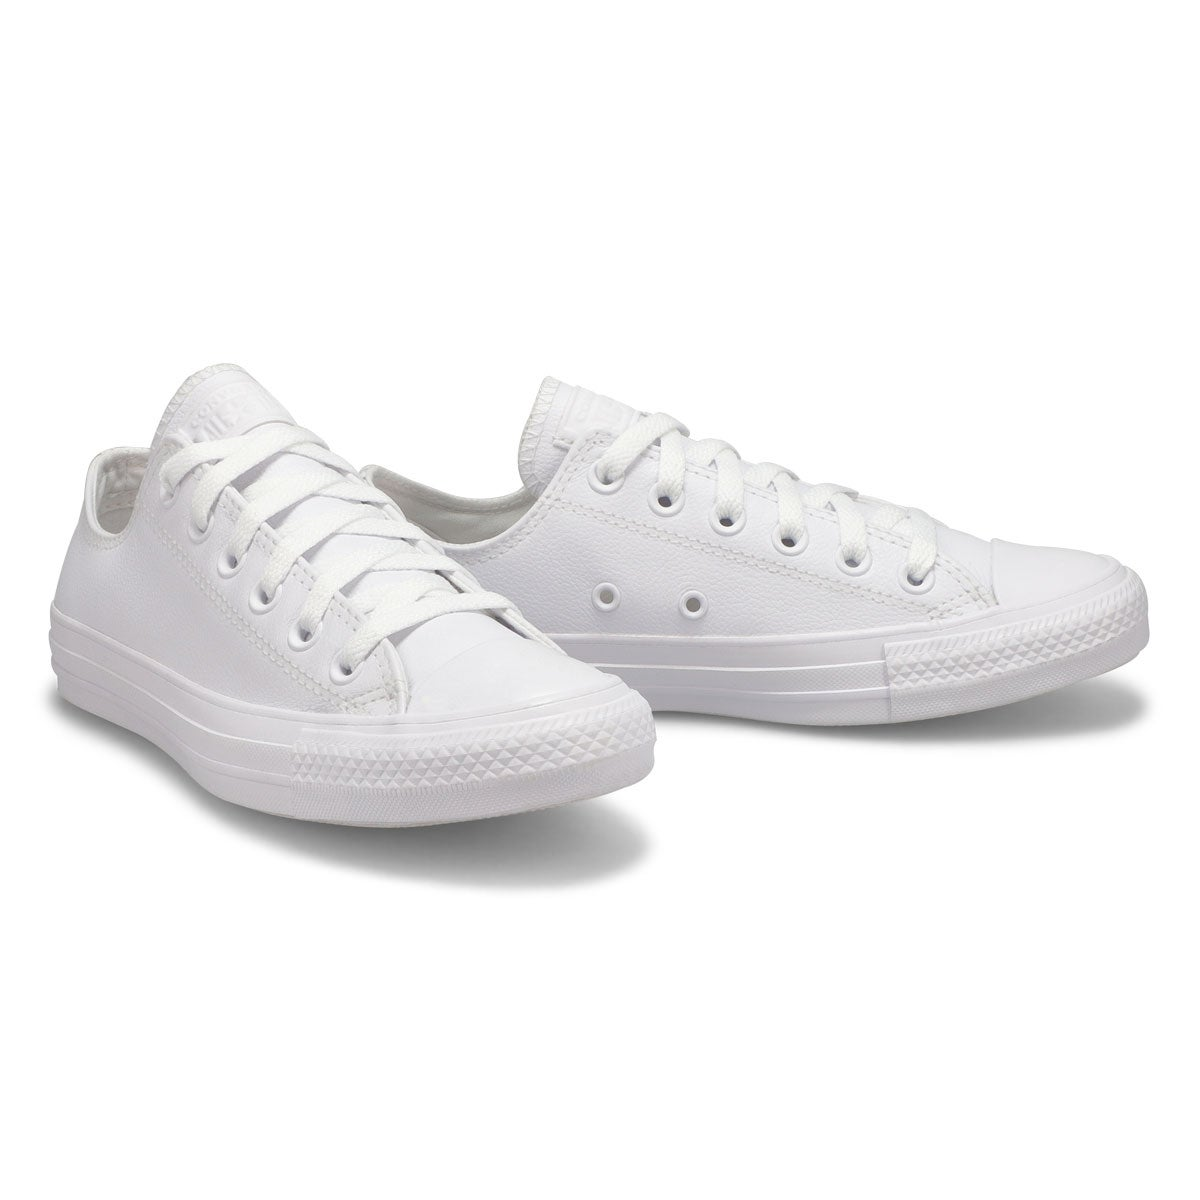 Lds CTAS Leather Ox wht mono snkr